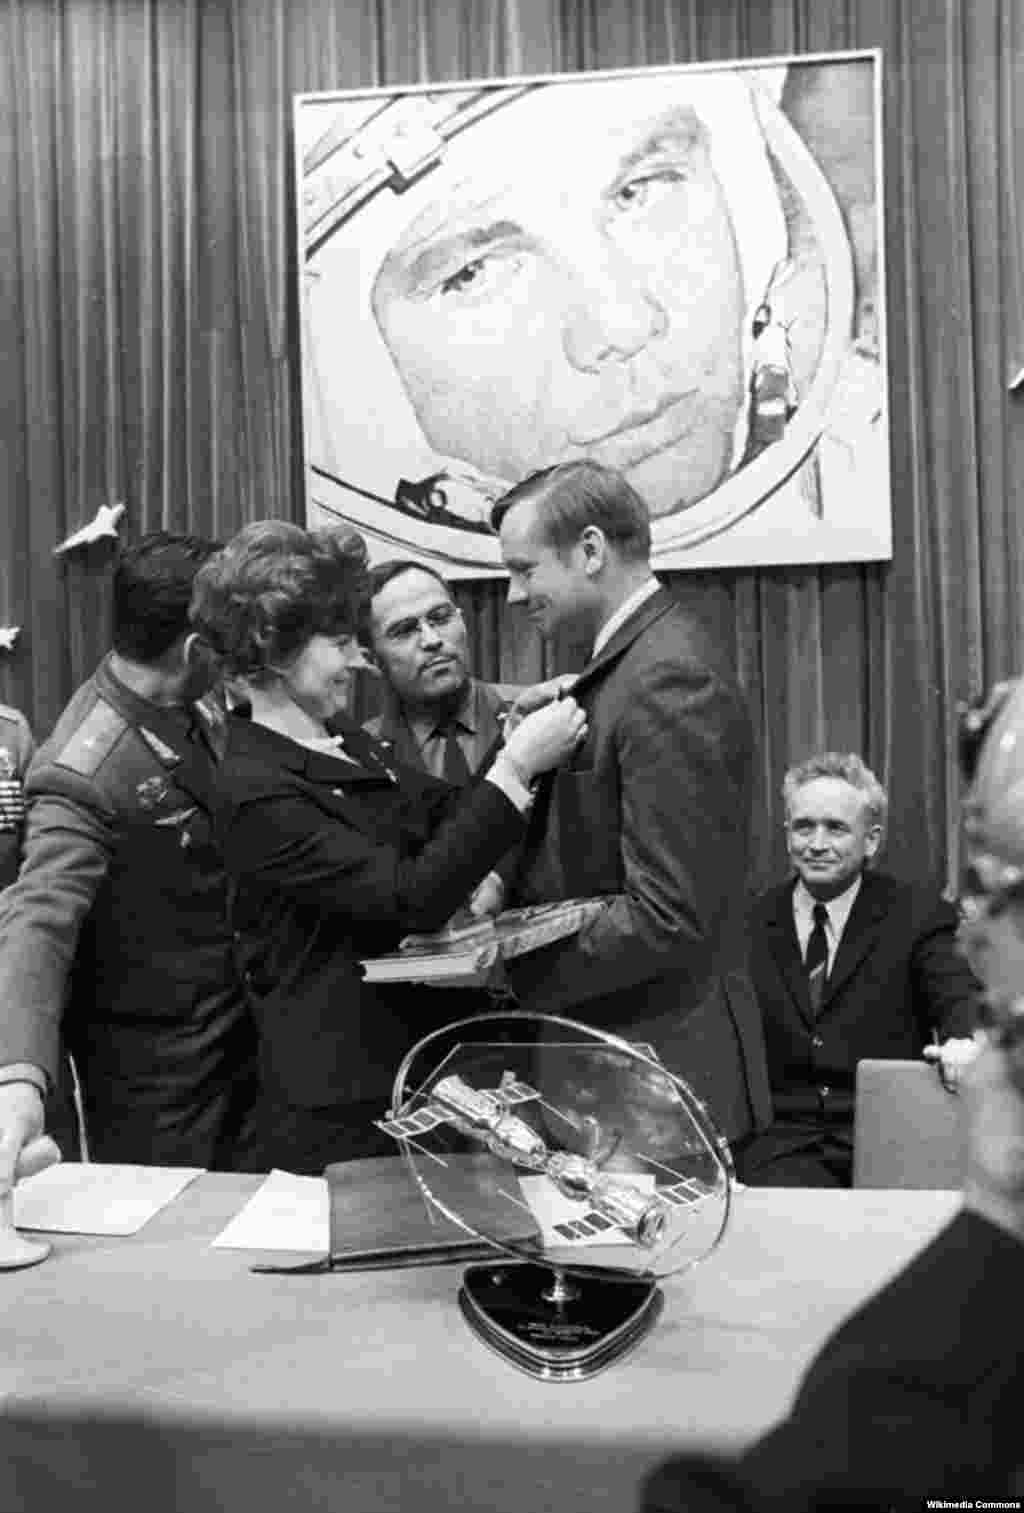 Tereshkova pins a badge on U.S. astronaut Neil Armstrong during his visit in 1970 to the Soviet training center, Star City. More than 500 people from 38 countries have traveled into space.